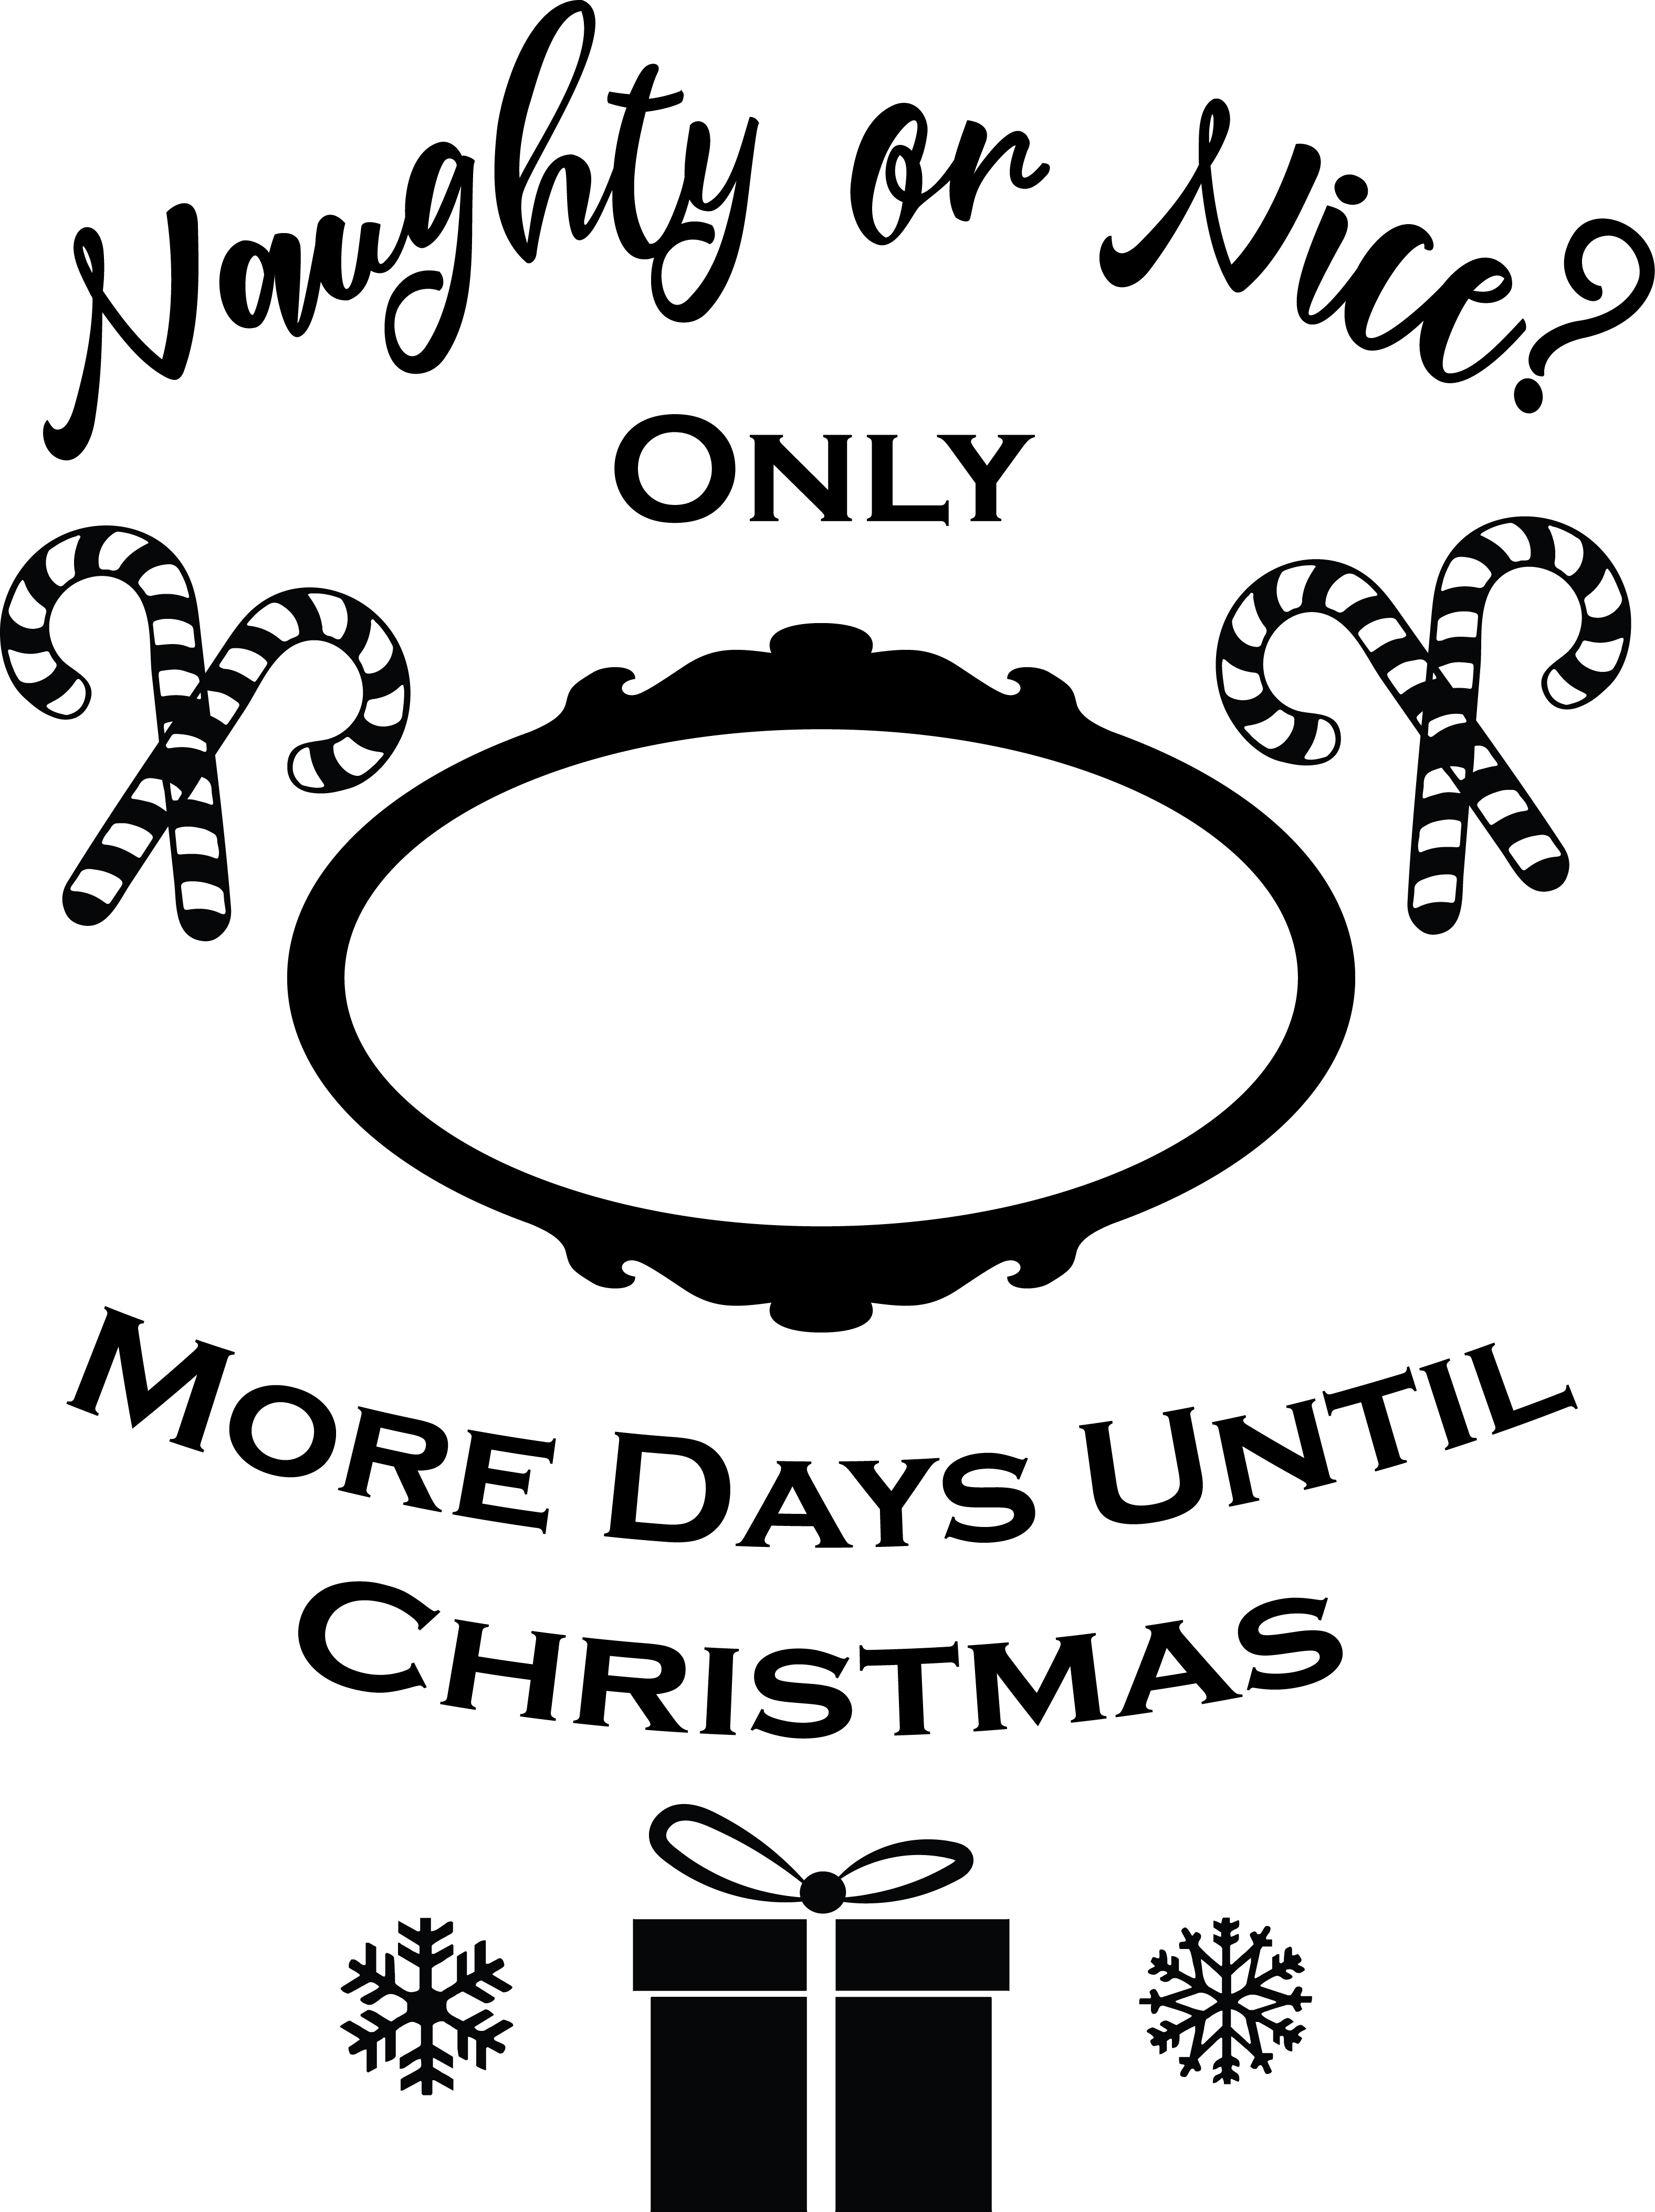 Days Until Christmas Svg Free.Daysuntilchristmas Free Svg Files More